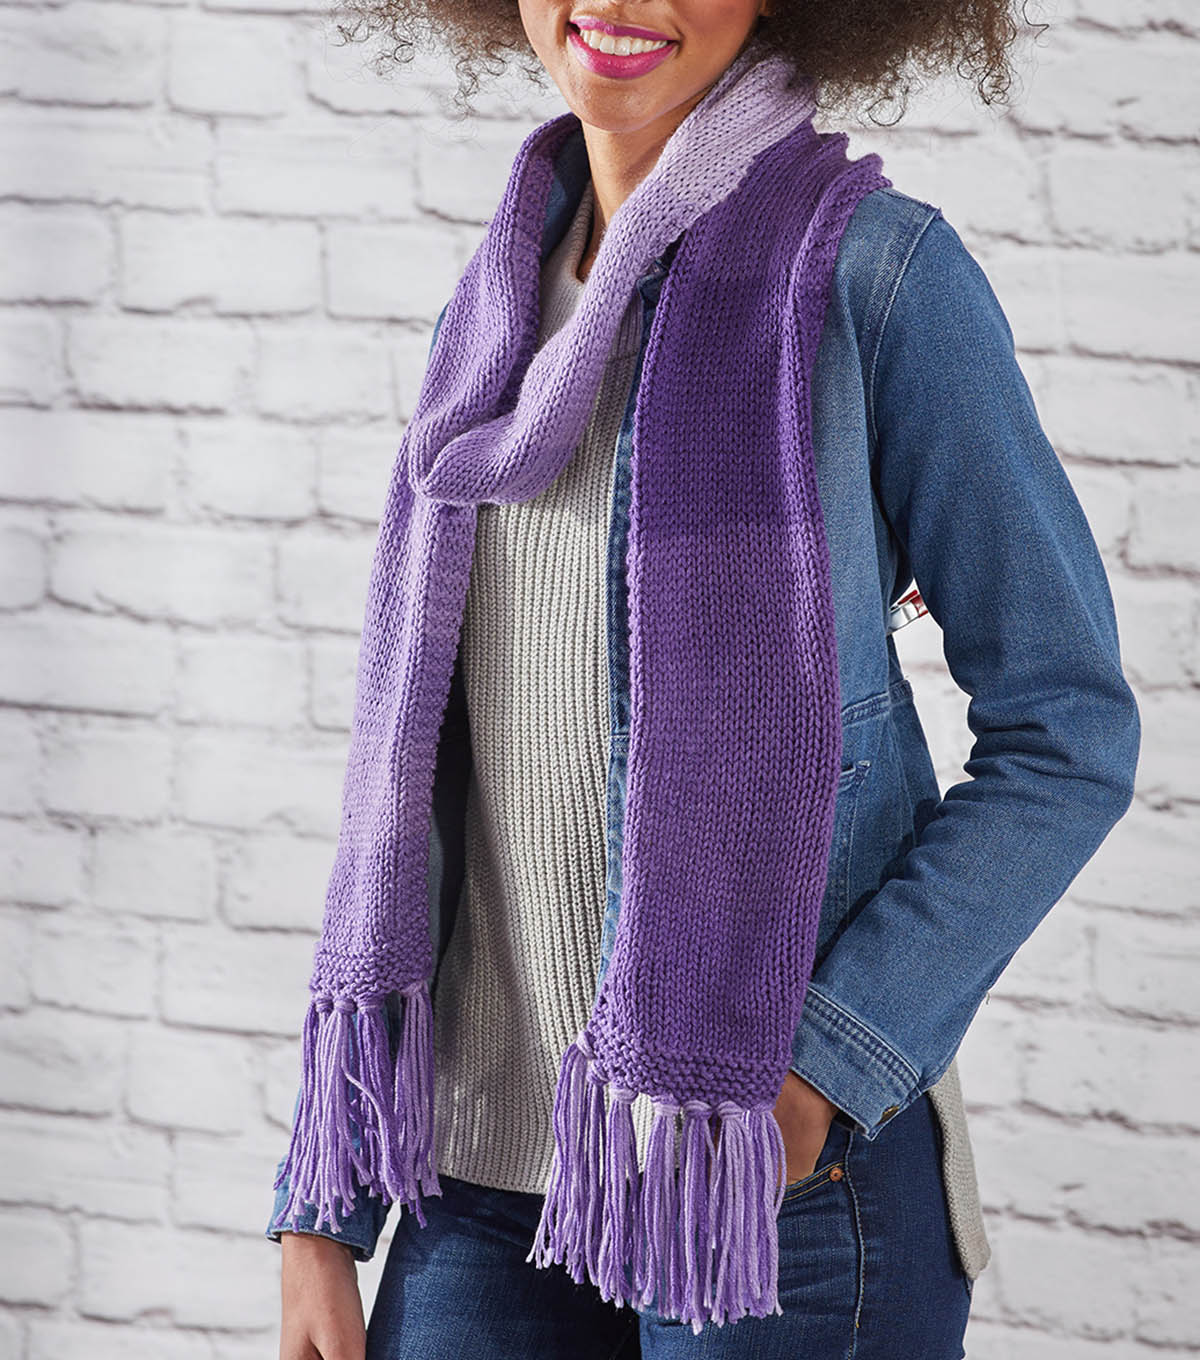 How To Make an Easy Stripes Knit Scarf